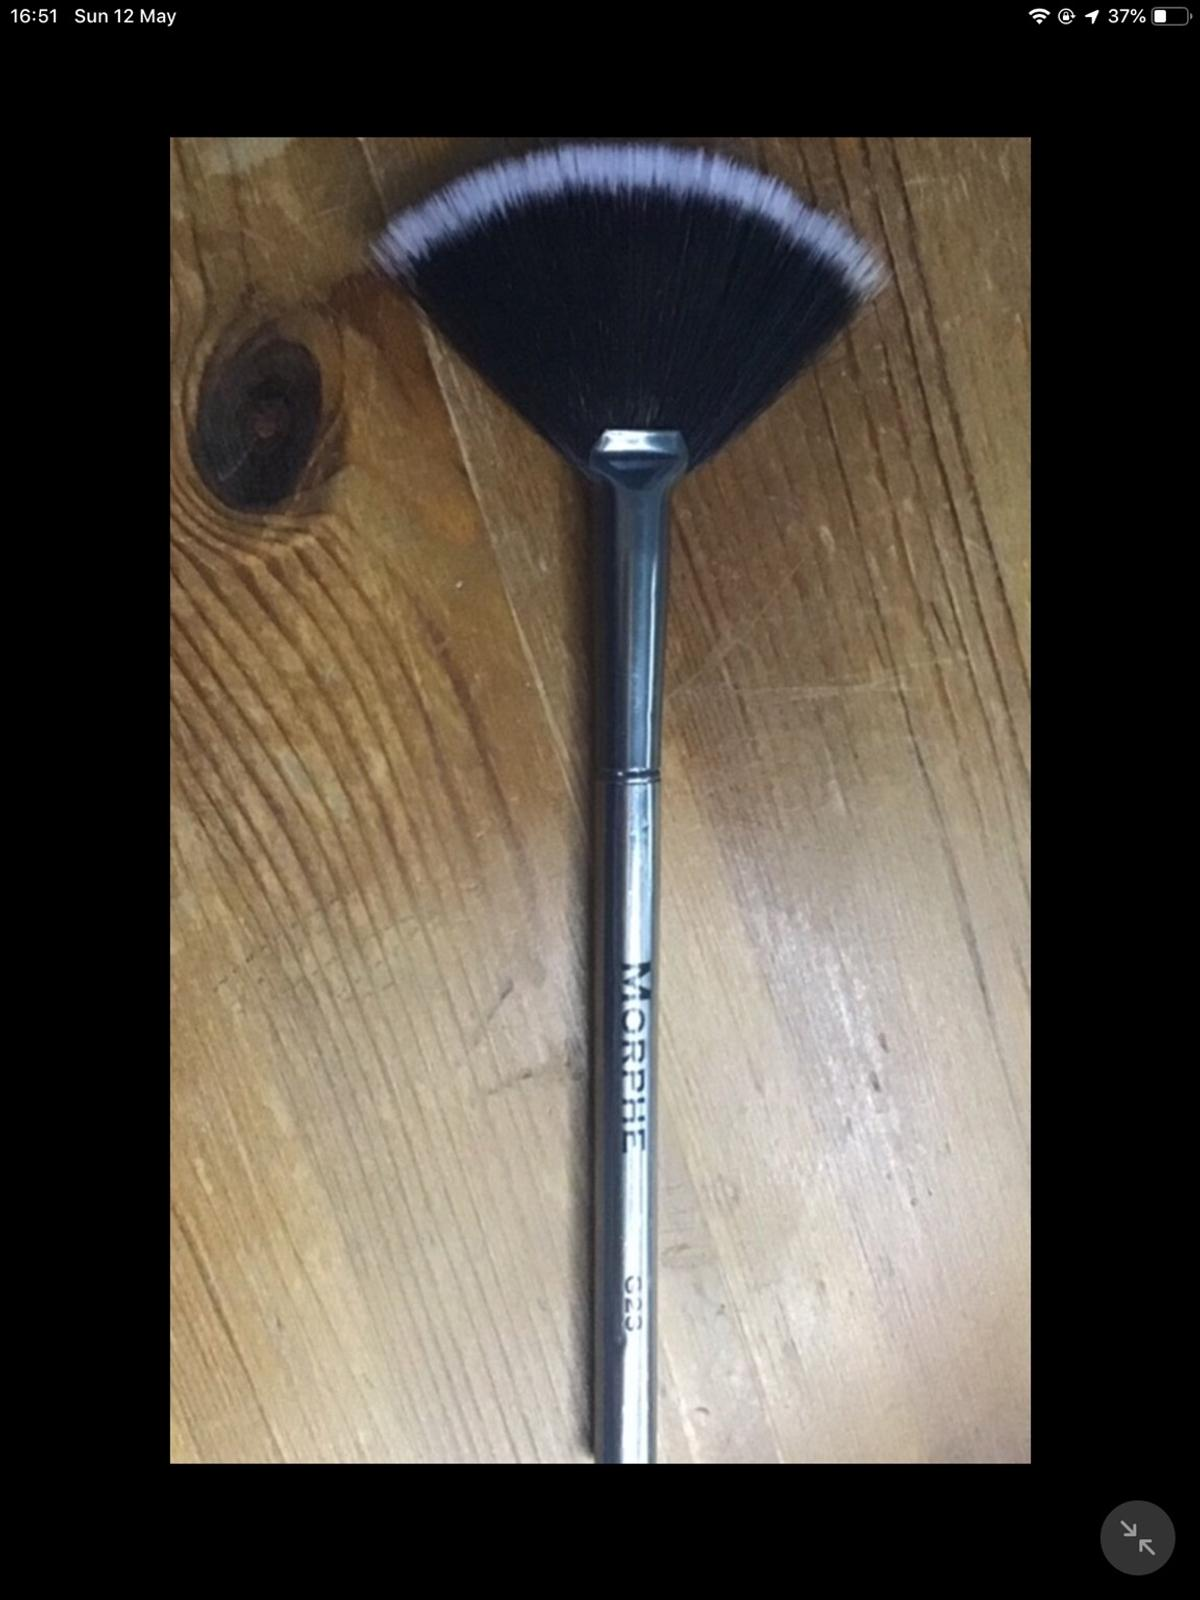 Morphe Fan Brush In Yo24 York For 5 00 For Sale Shpock A fan brush actually has a bunch of great (and easy) uses for many of your makeup products. shpock